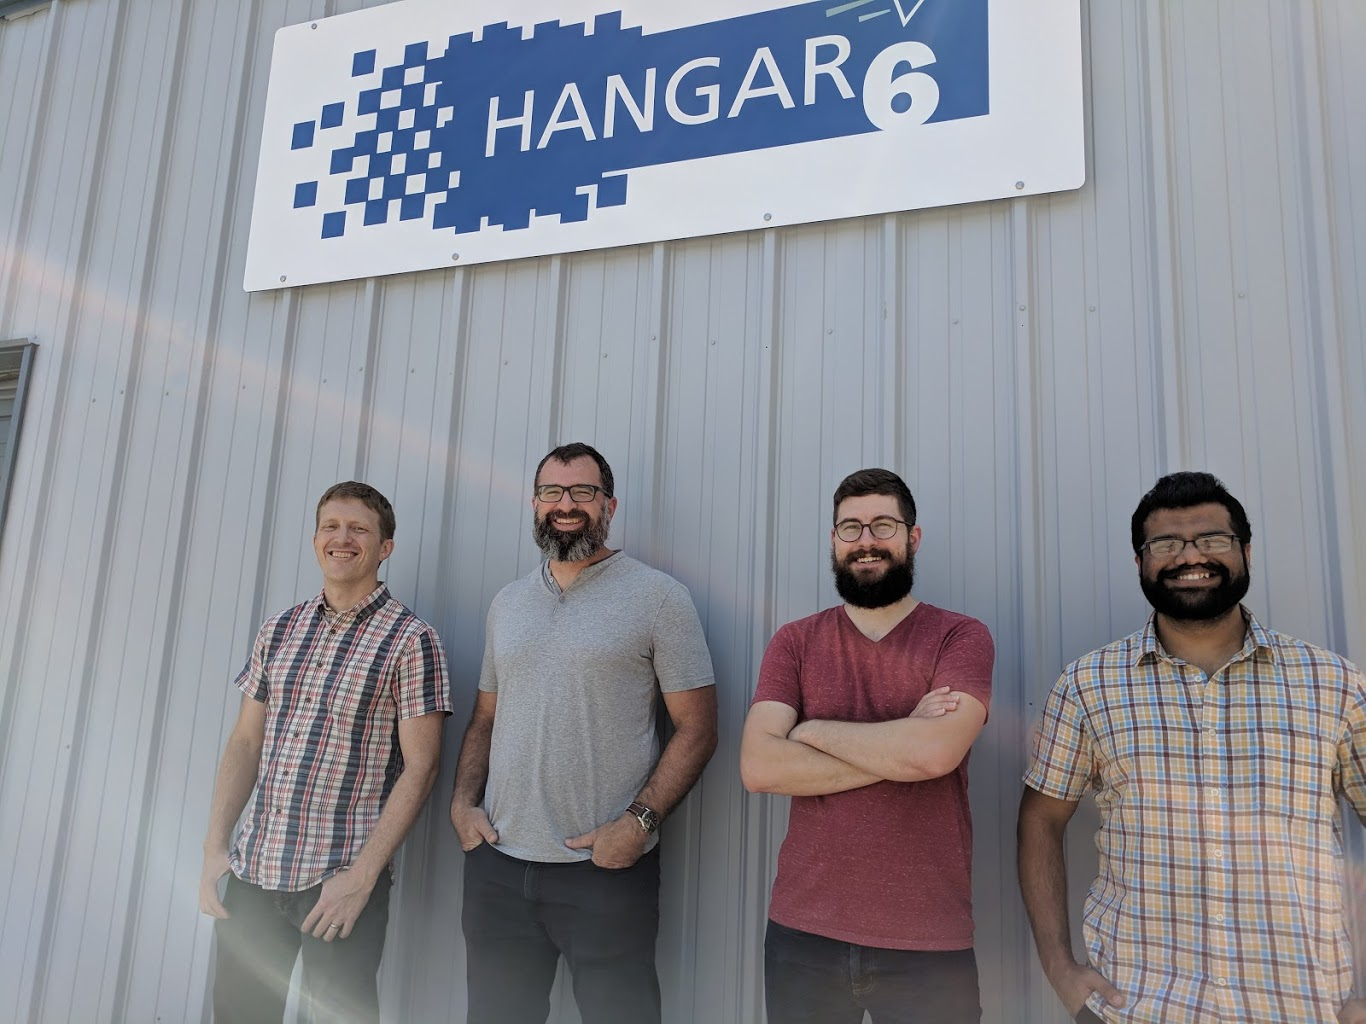 Trig-Team-Hangar6-Sponsor-Group